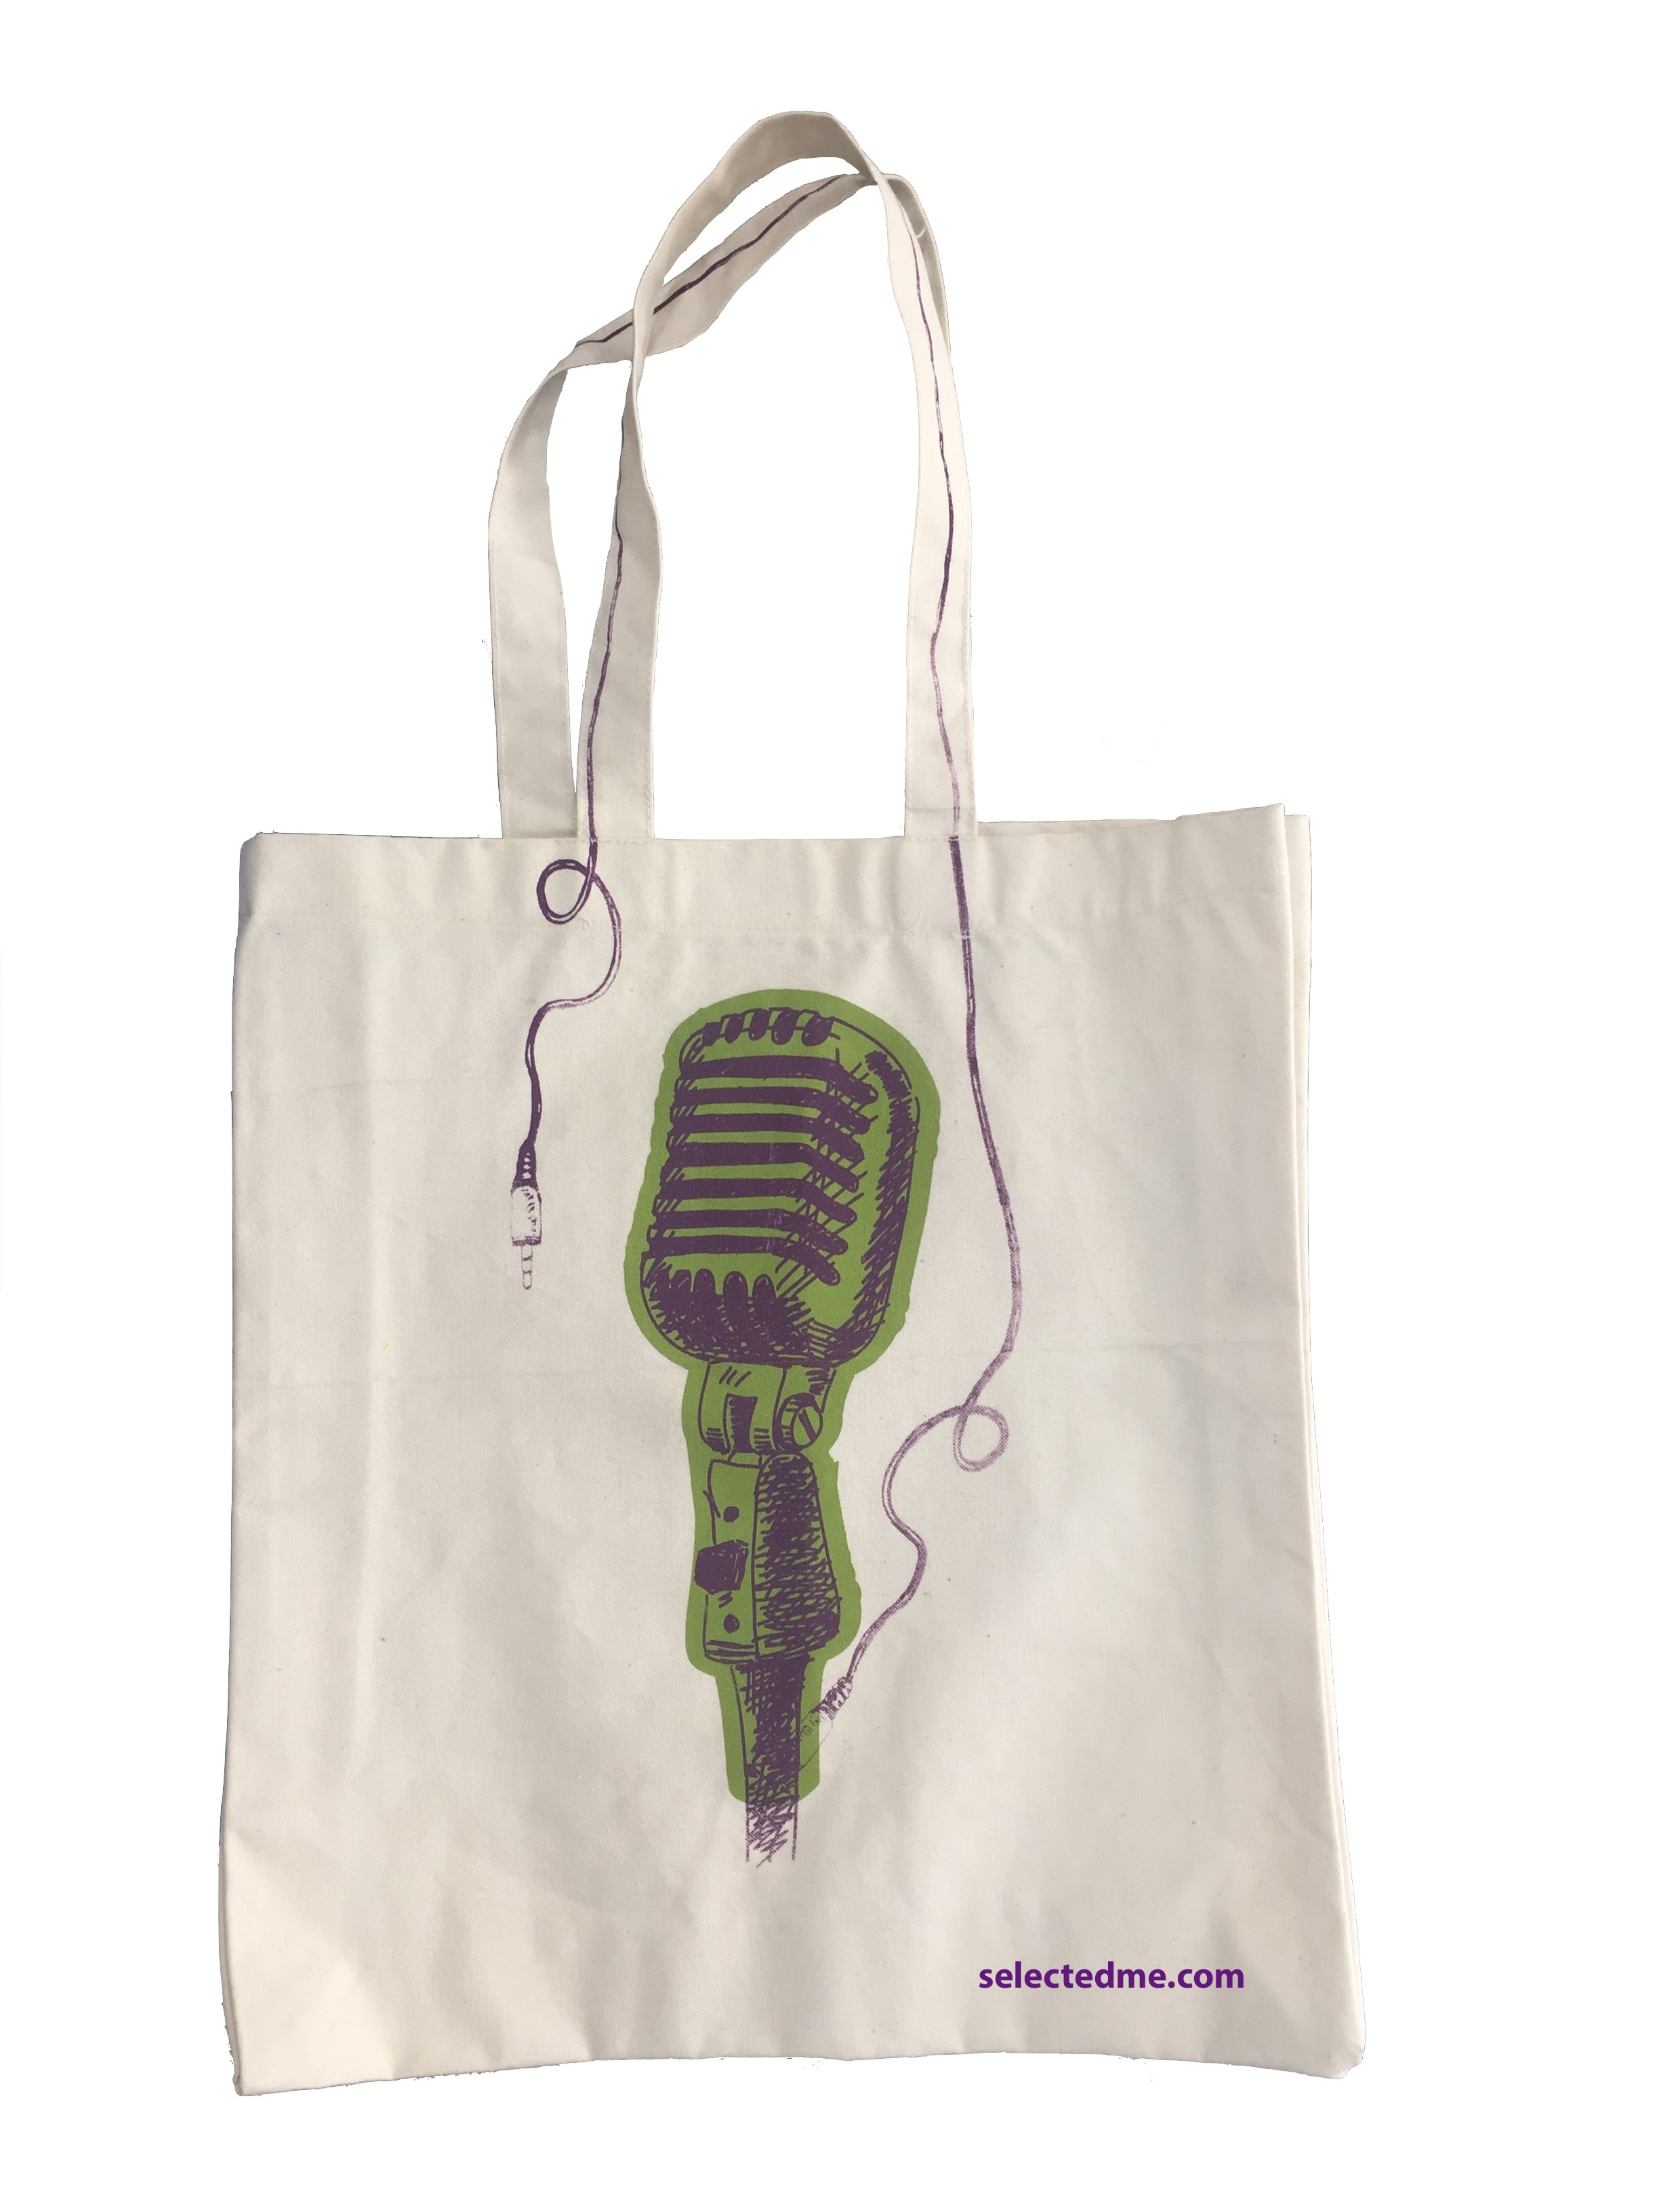 604ac1d867 Personalized Tote Bags - Canvas Cotton Tote Bags